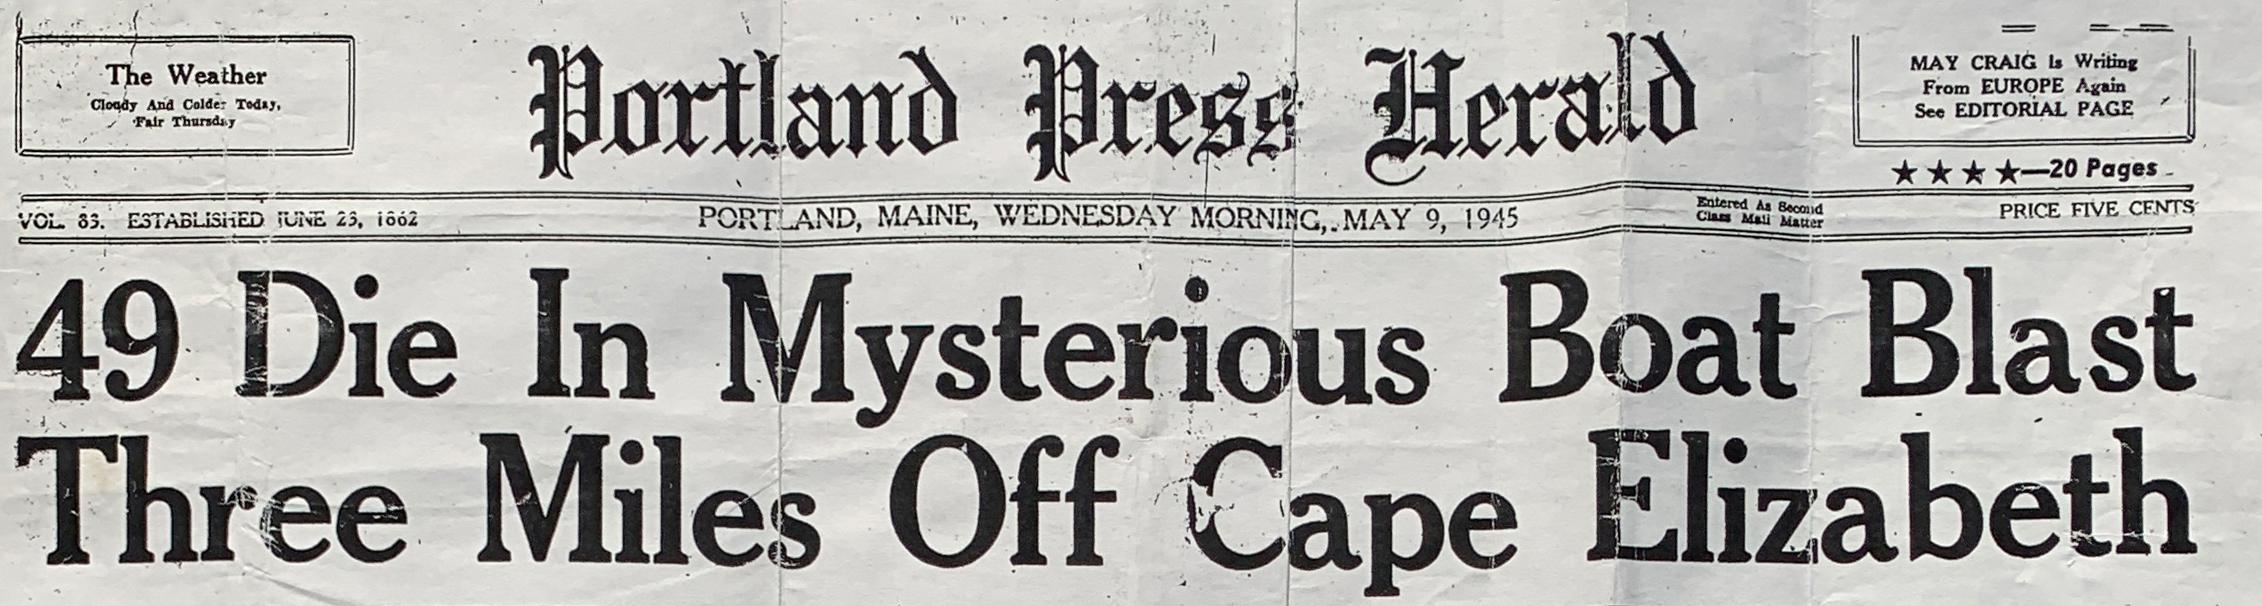 Embed 1 Portland Press Harold May 9 1945 Headline